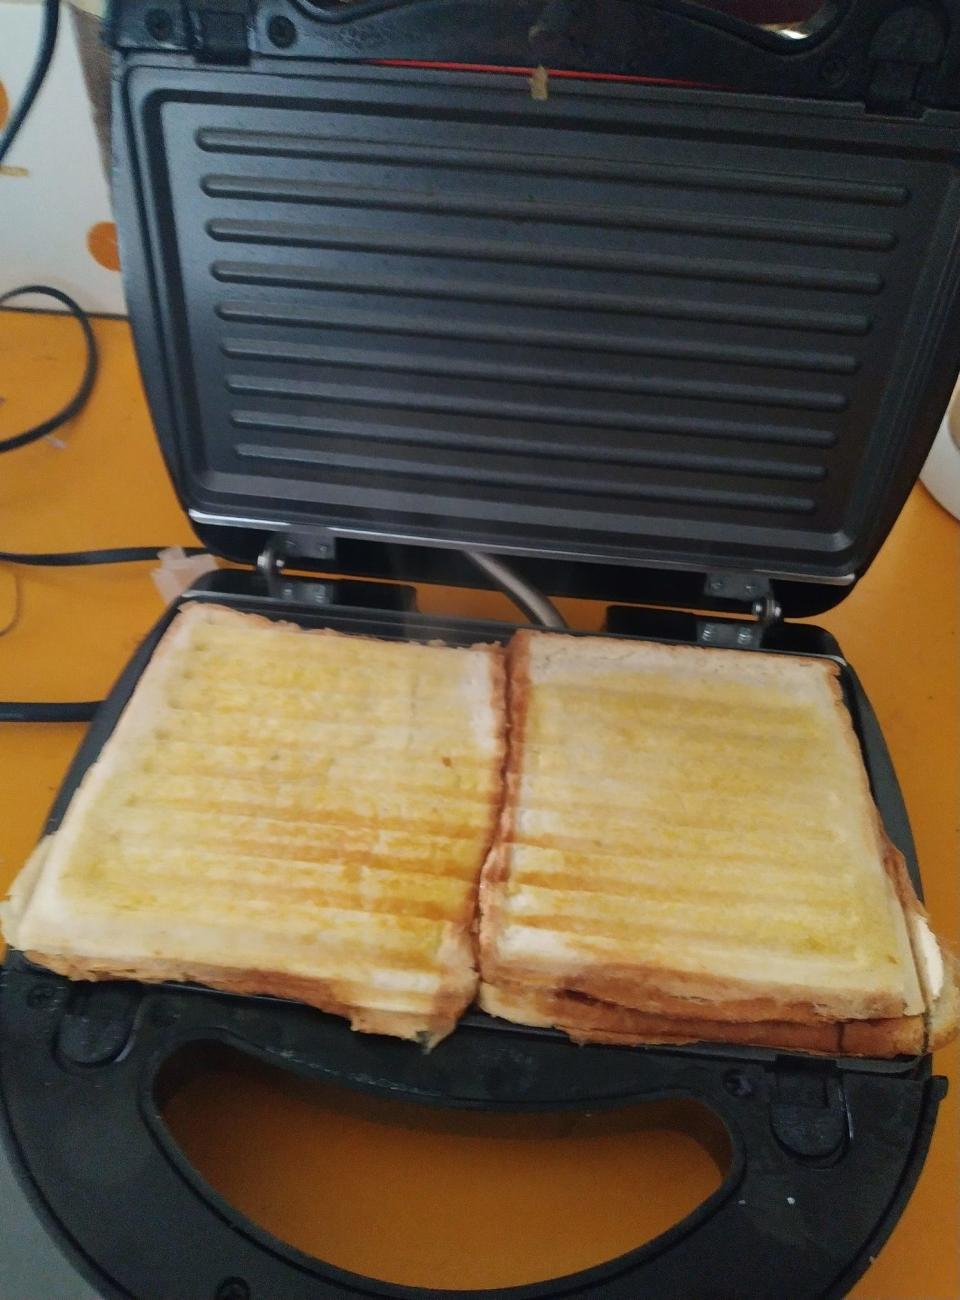 The $35 kitchen gadget has been hailed a 'game-changer' by Kmart fans. Photo: Facebook.